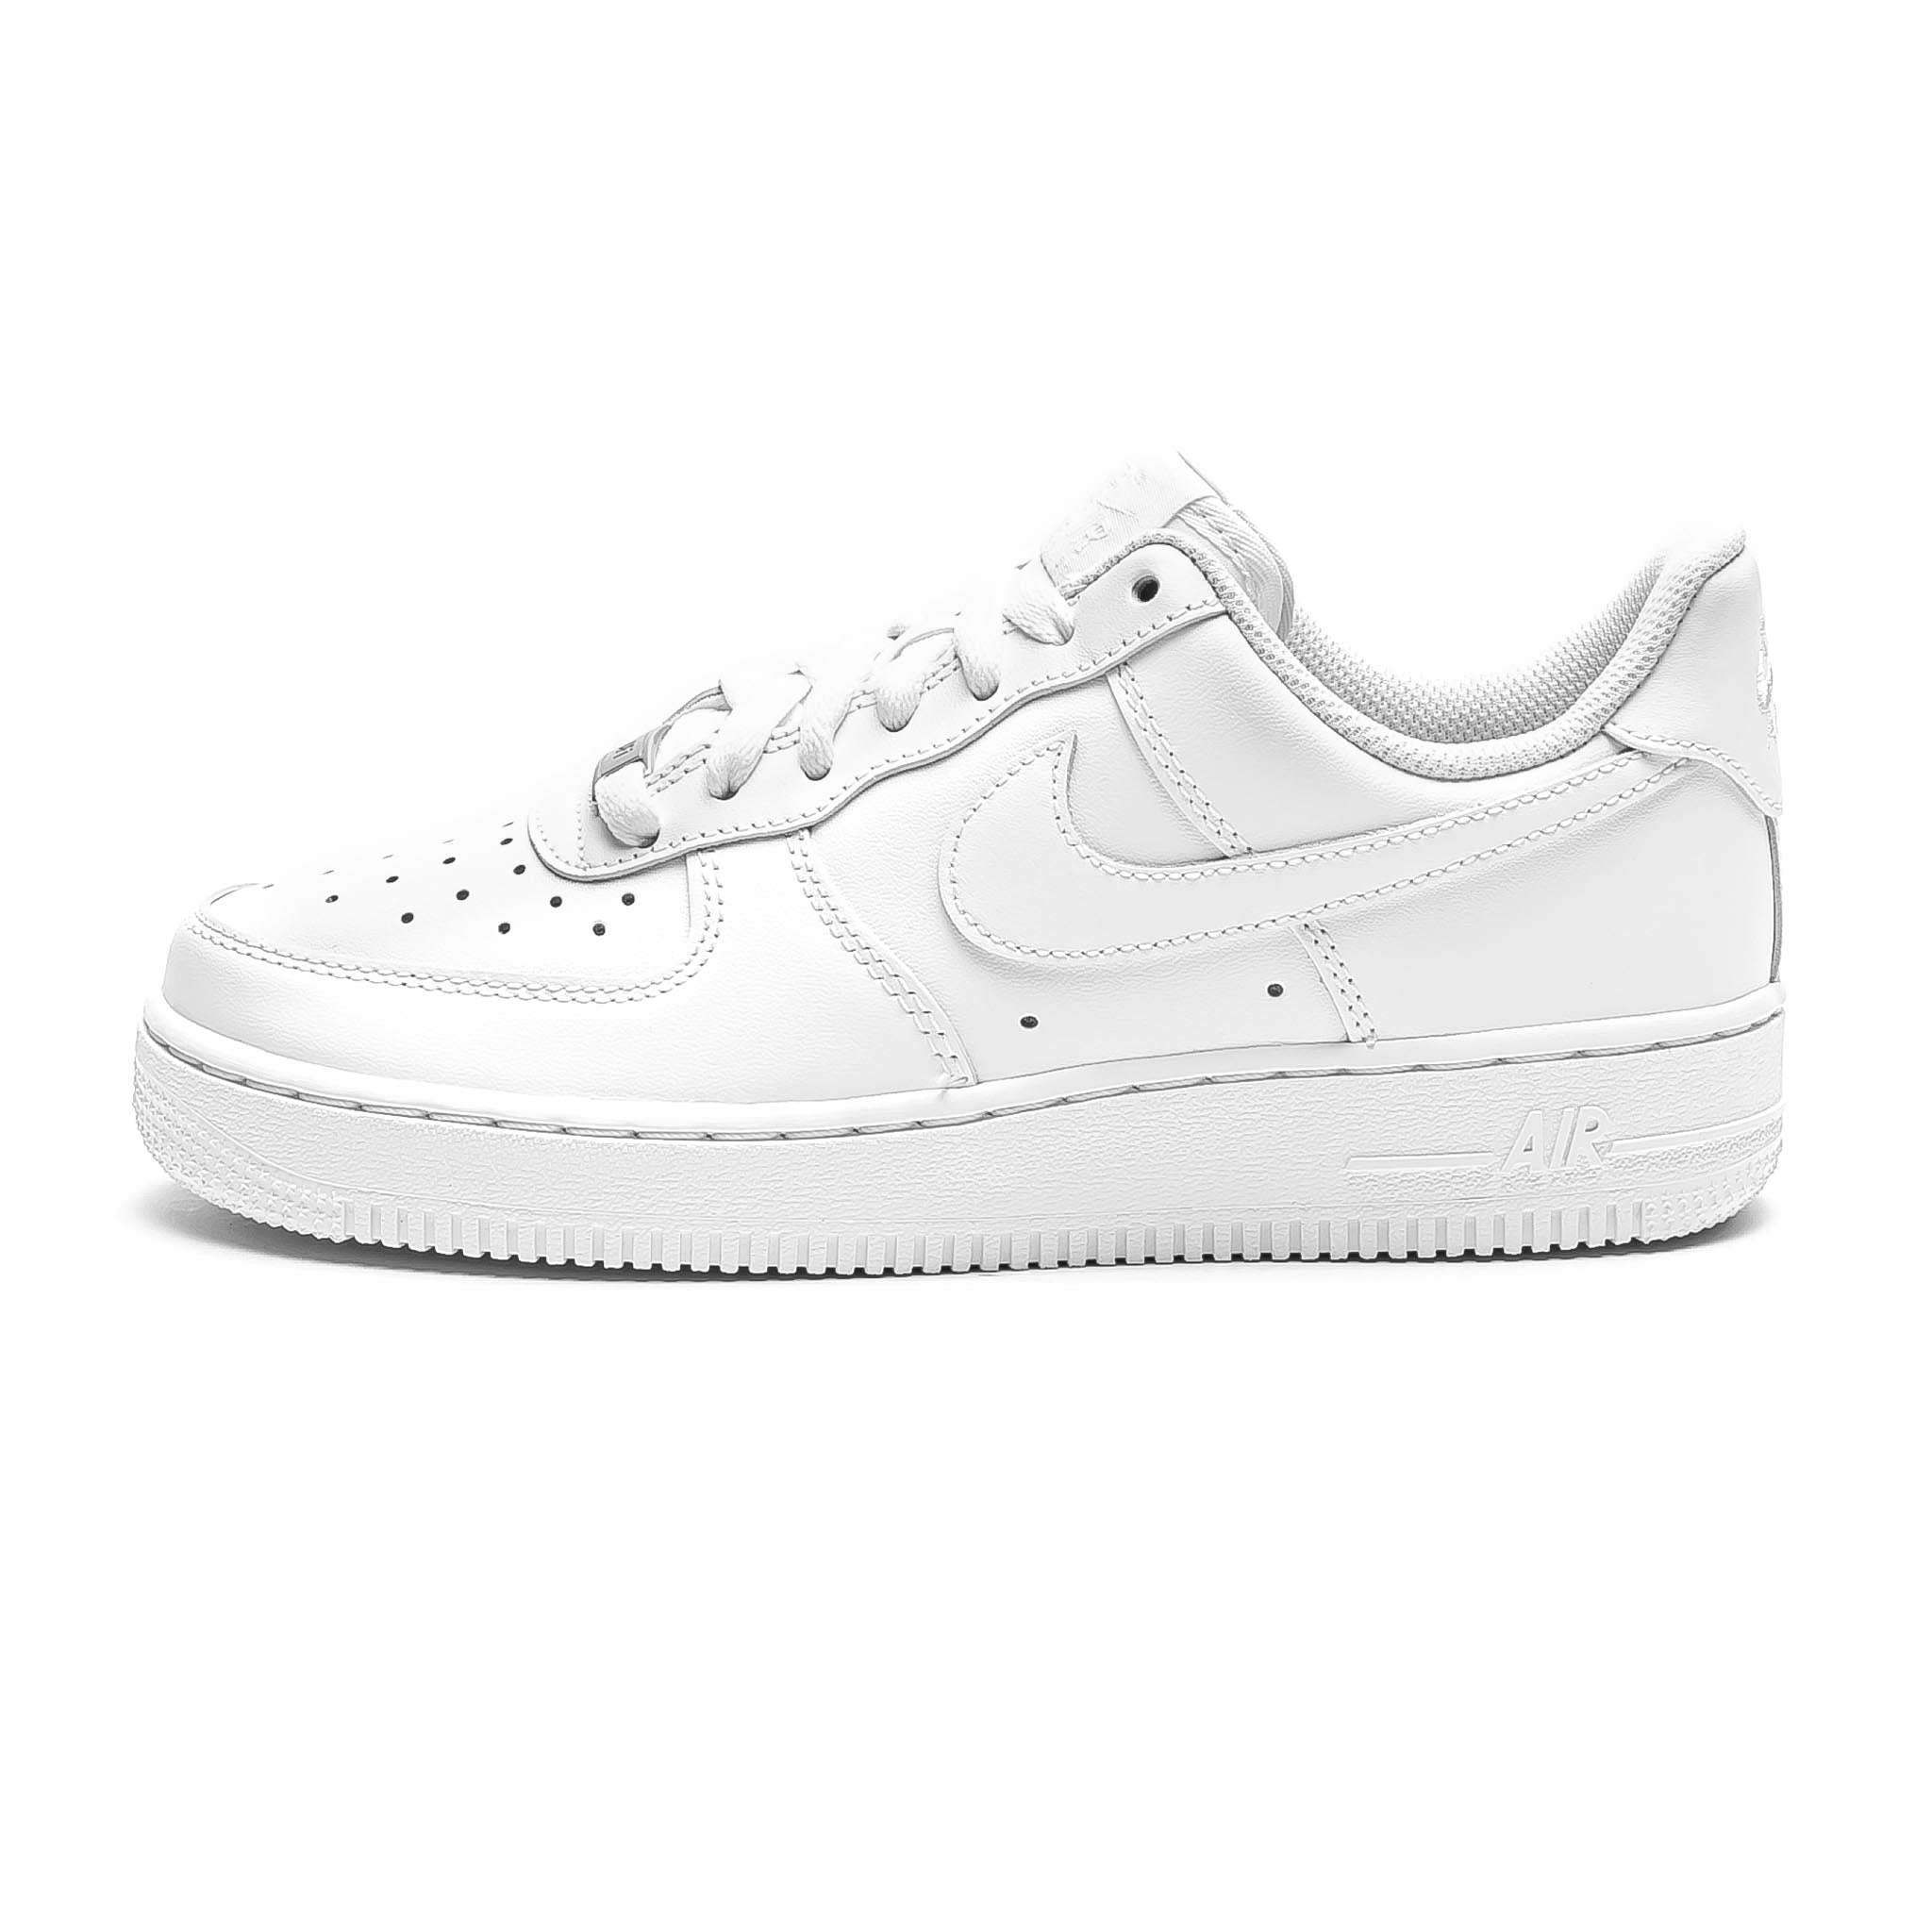 Nike Air Force 1 '07 Low 'Triple White'